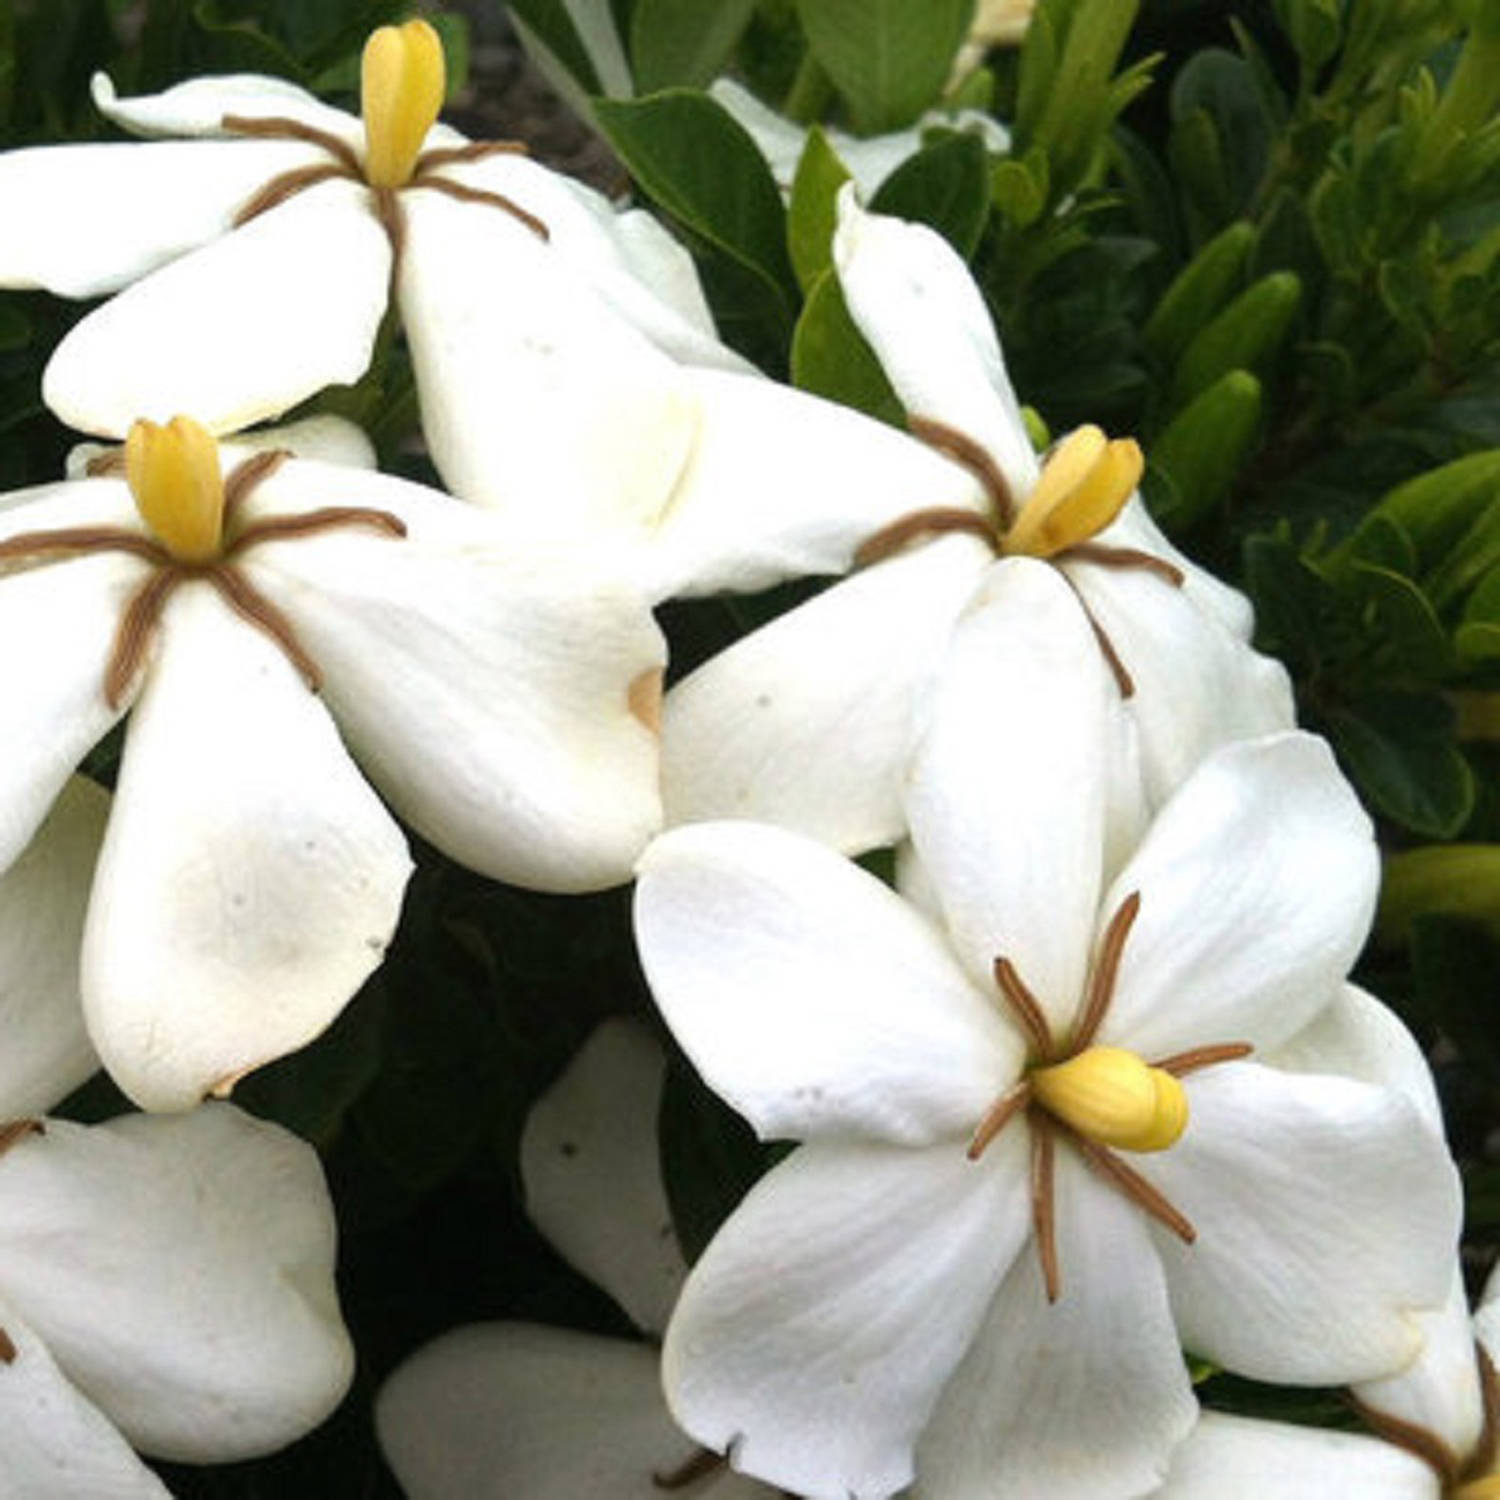 Hardy Daisy Gardenia, Fragrant White Blooming Shrub